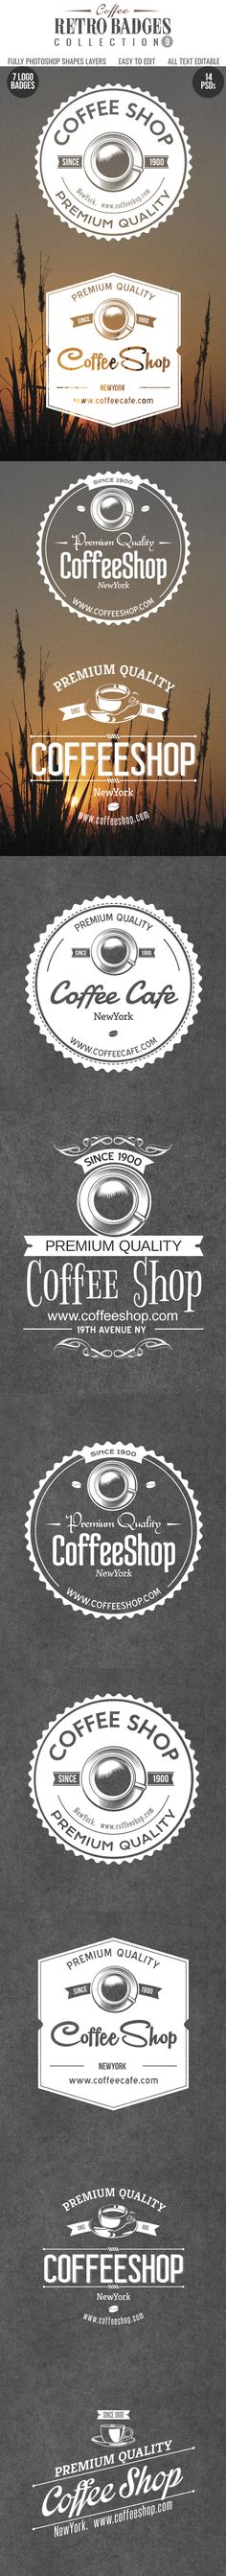 Coffee logo Badges by creative artx, via Behance